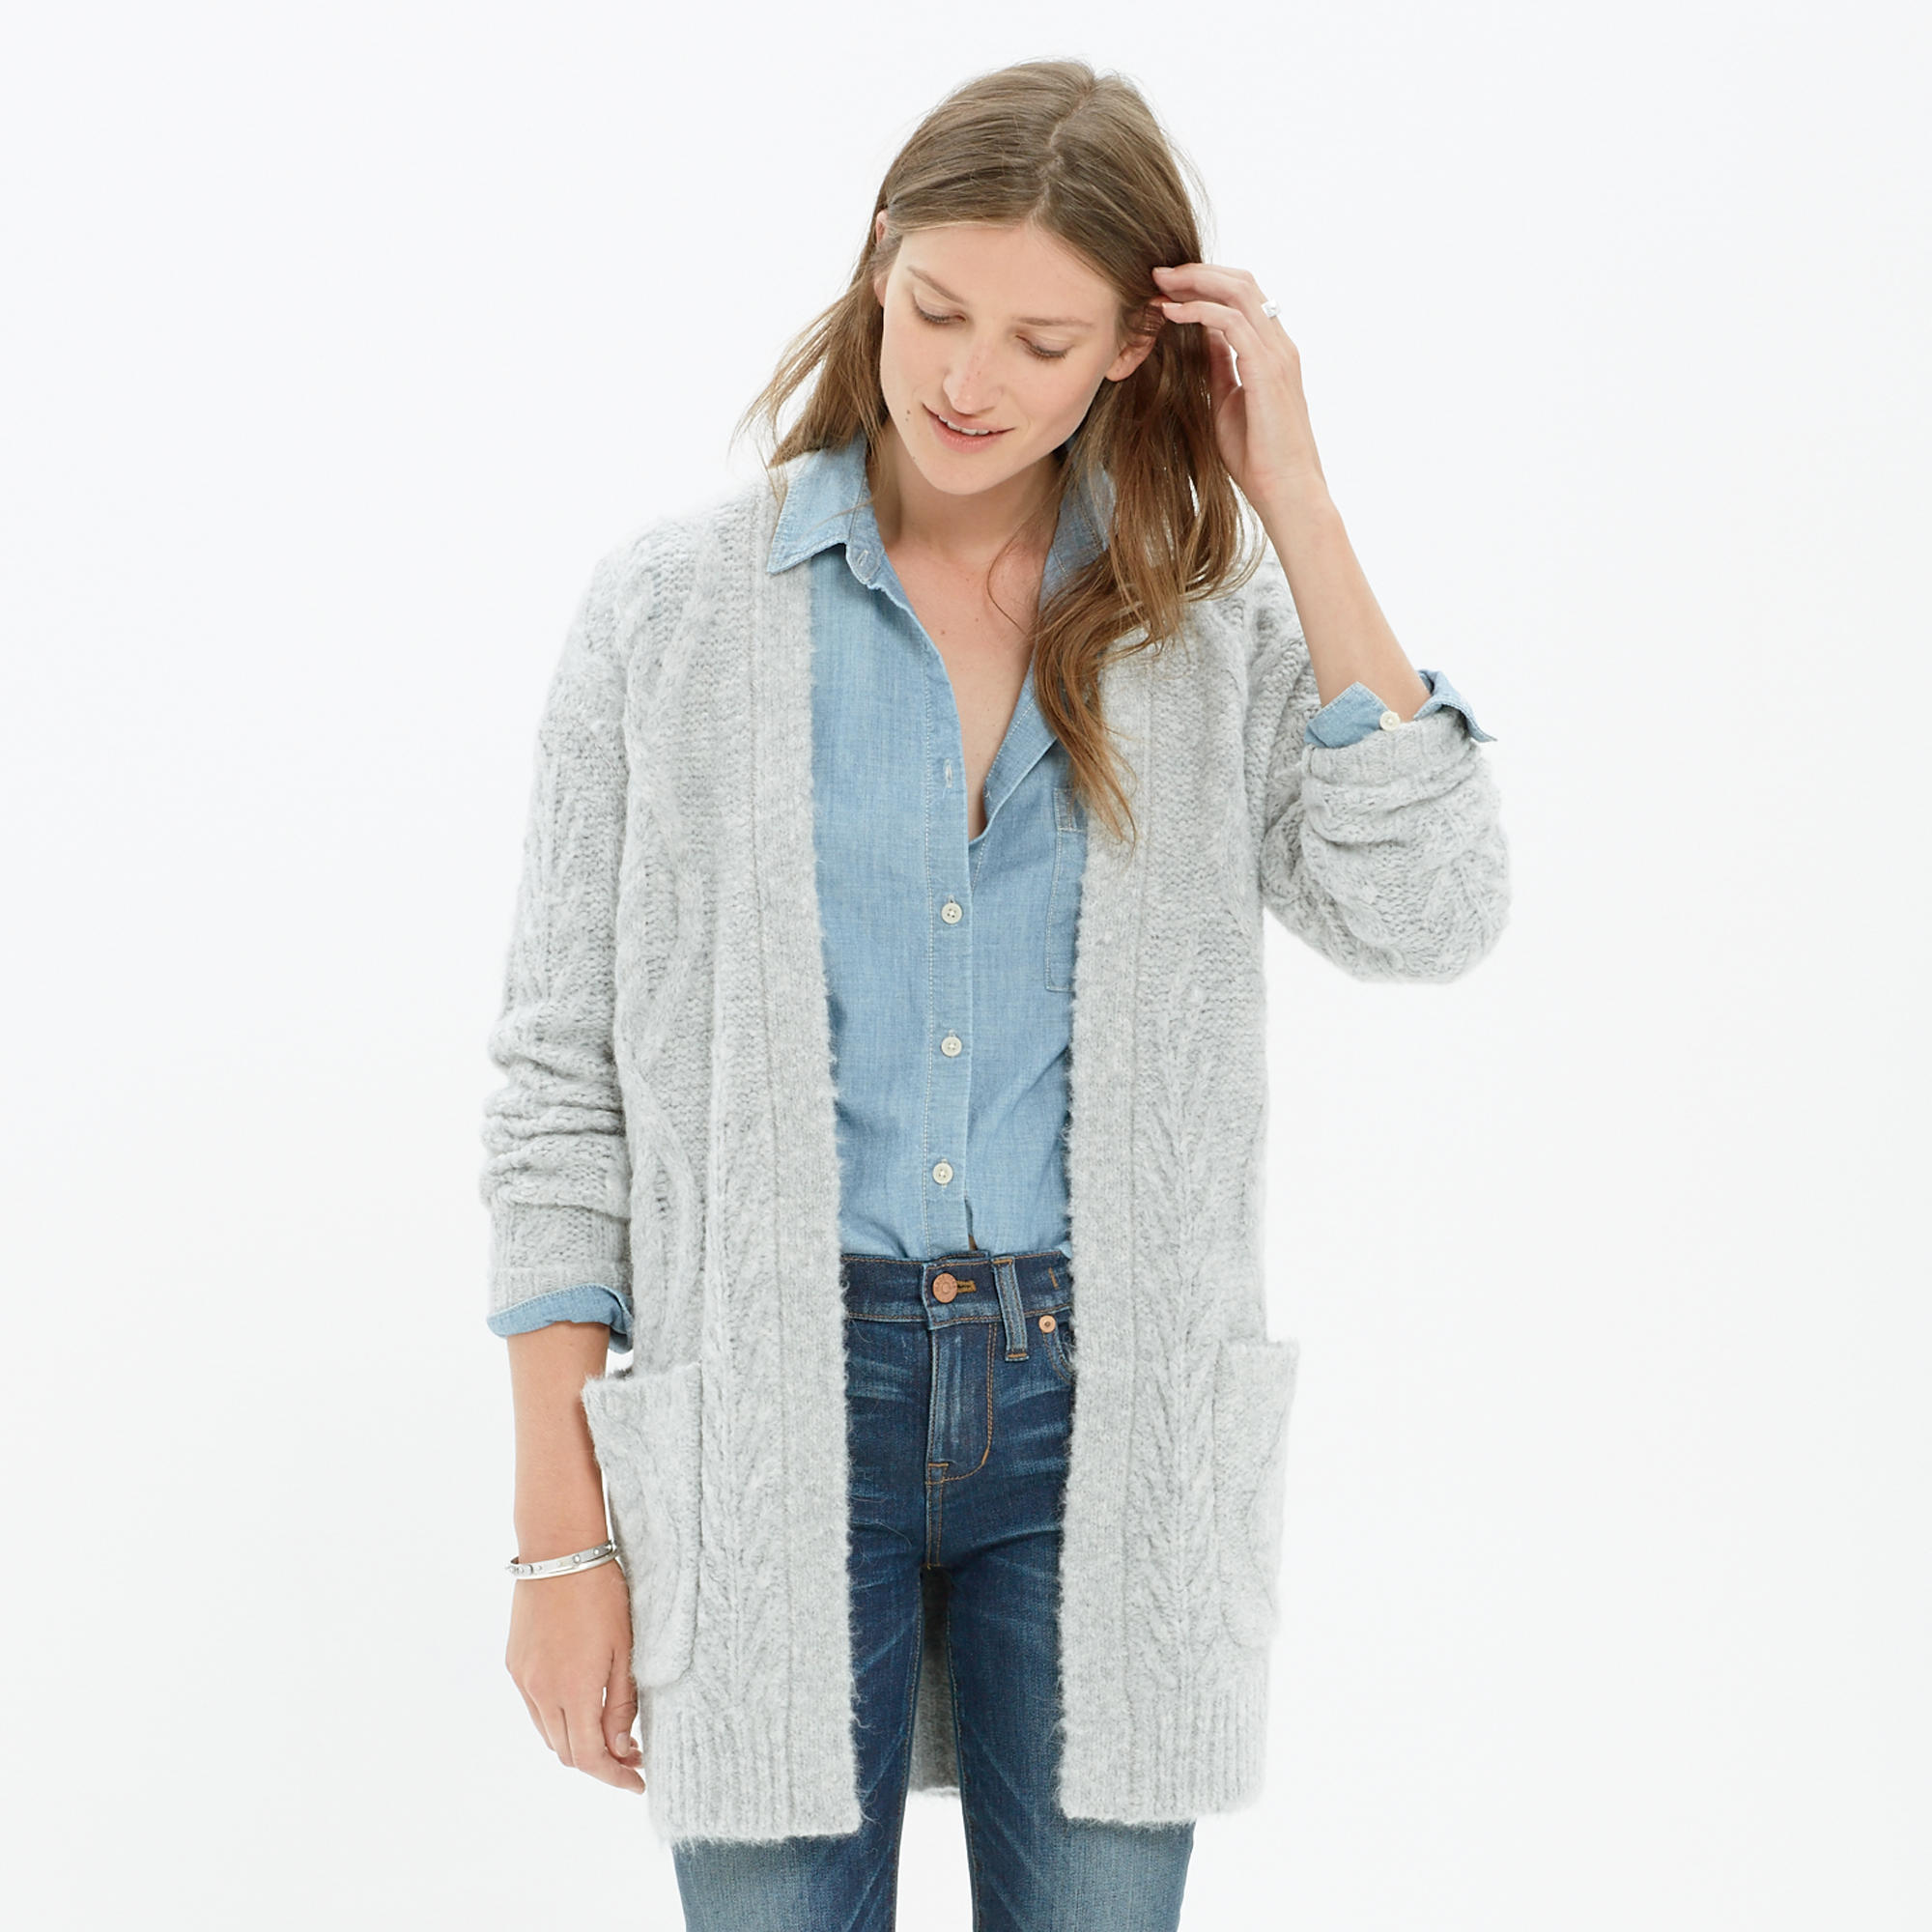 Oversized Cableknit Cardigan : cardigans & sweater-jackets | Madewell